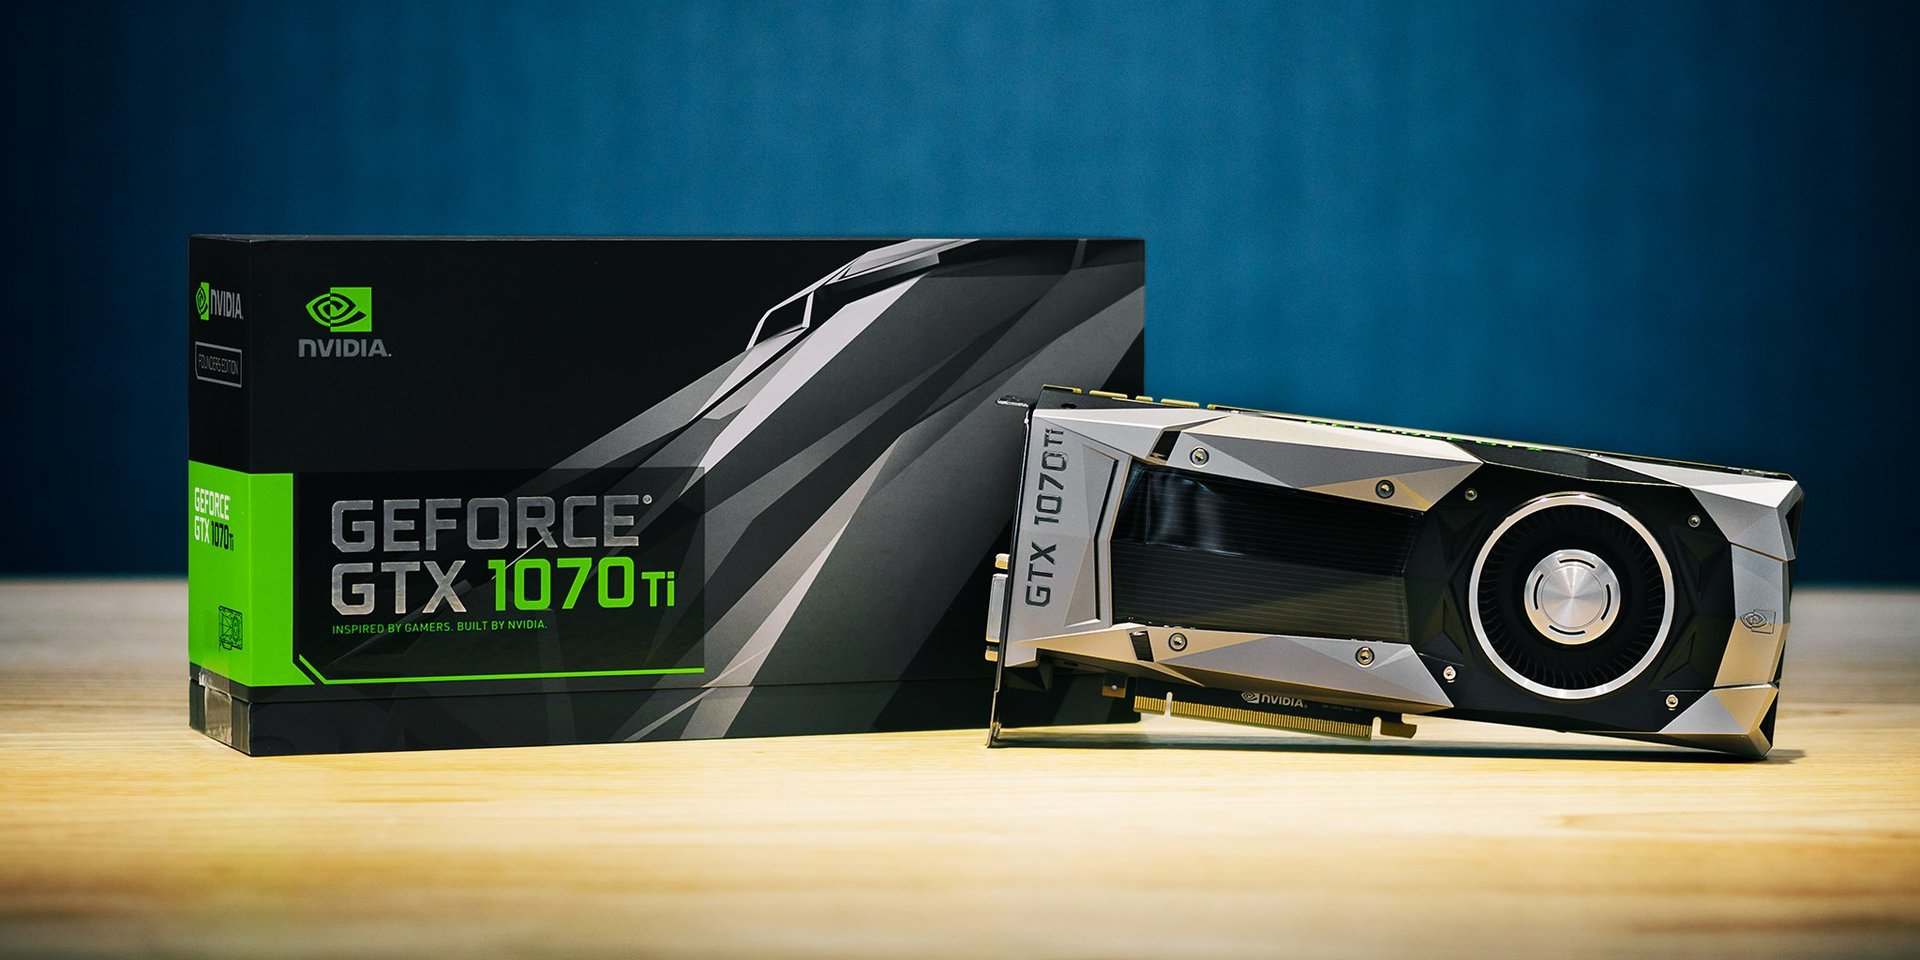 Die neue GeForce GTX 1070 Ti Founders Edition